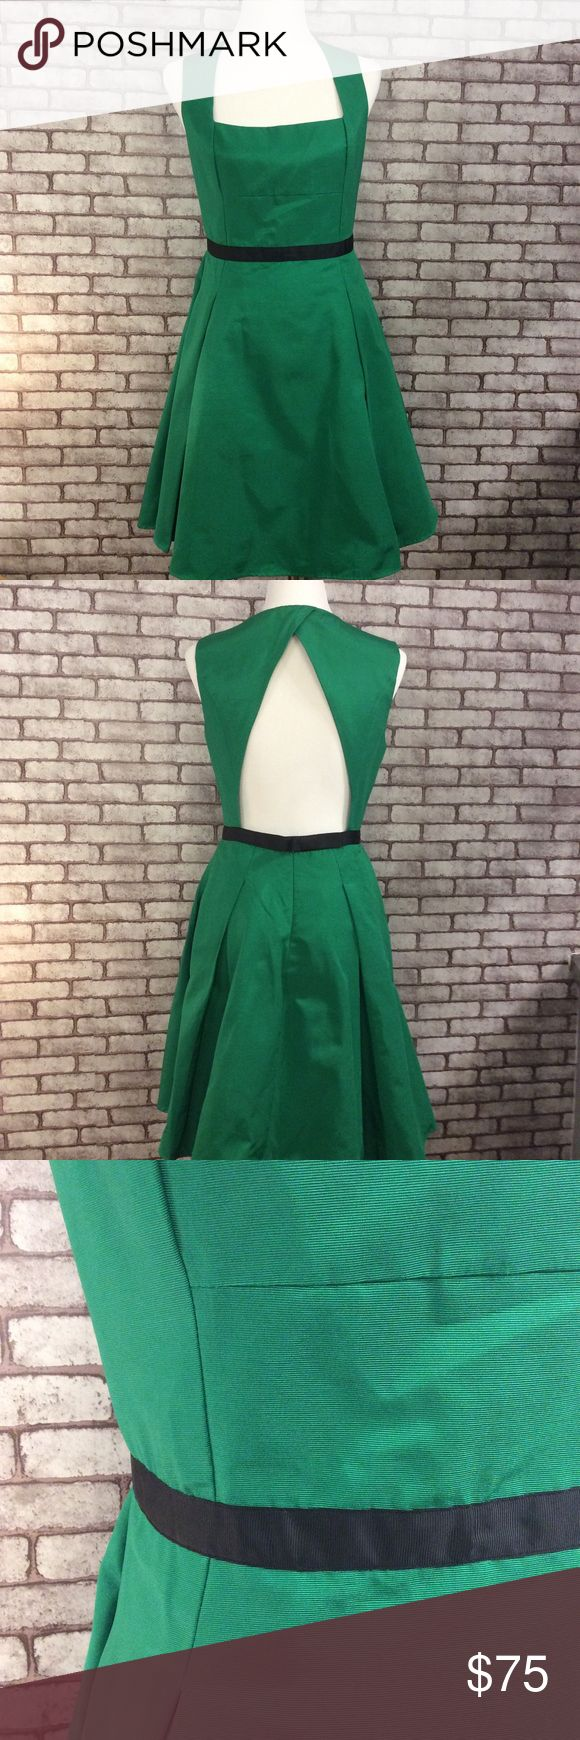 Adolfo Dominguez U dress Love love love this dress !!! In great condition, one small pen mark as pictured. Would be great for any party. Would fit a bigger busted lady better. No rips , or pilling. ⭐️ no trading or modeling ⭐️ adolfo Dominguez Dresses Midi